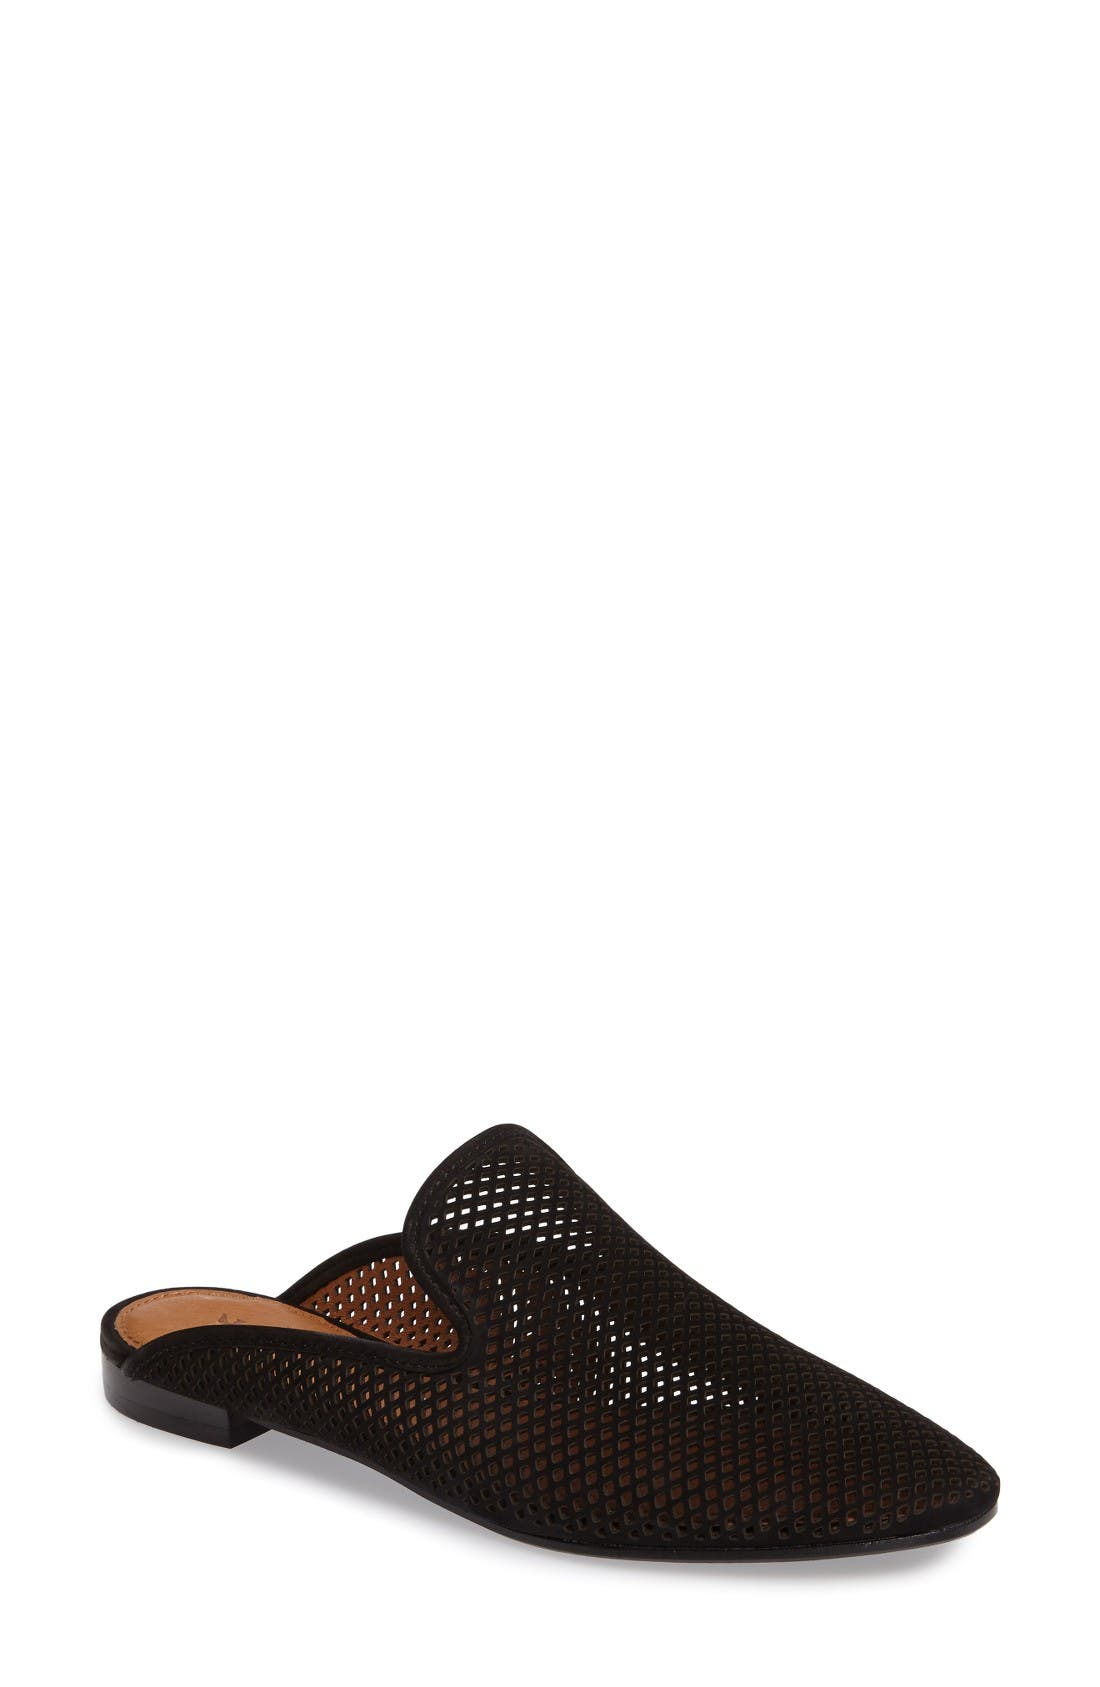 Gwen Perforated Mule,                         Main,                         color, Black Nubuck Leather